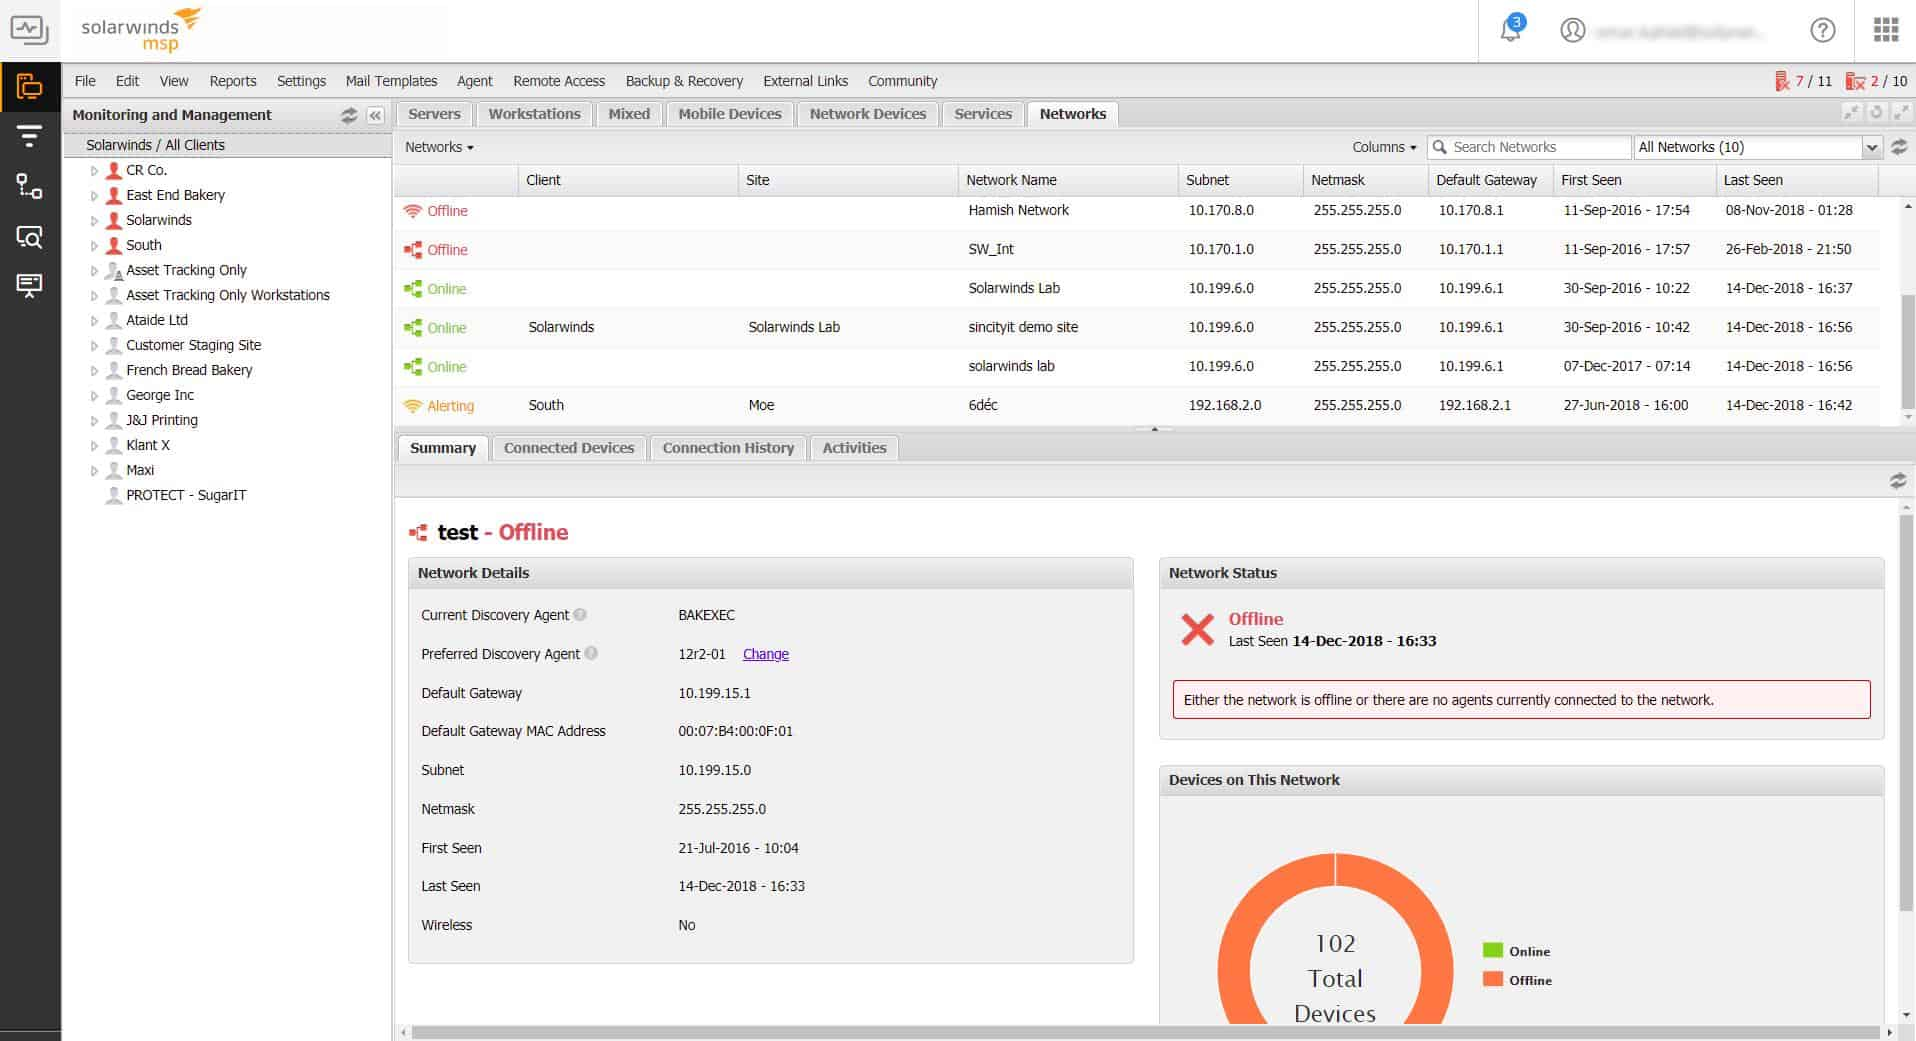 N-able RMM Monitoring and Management Dashboard